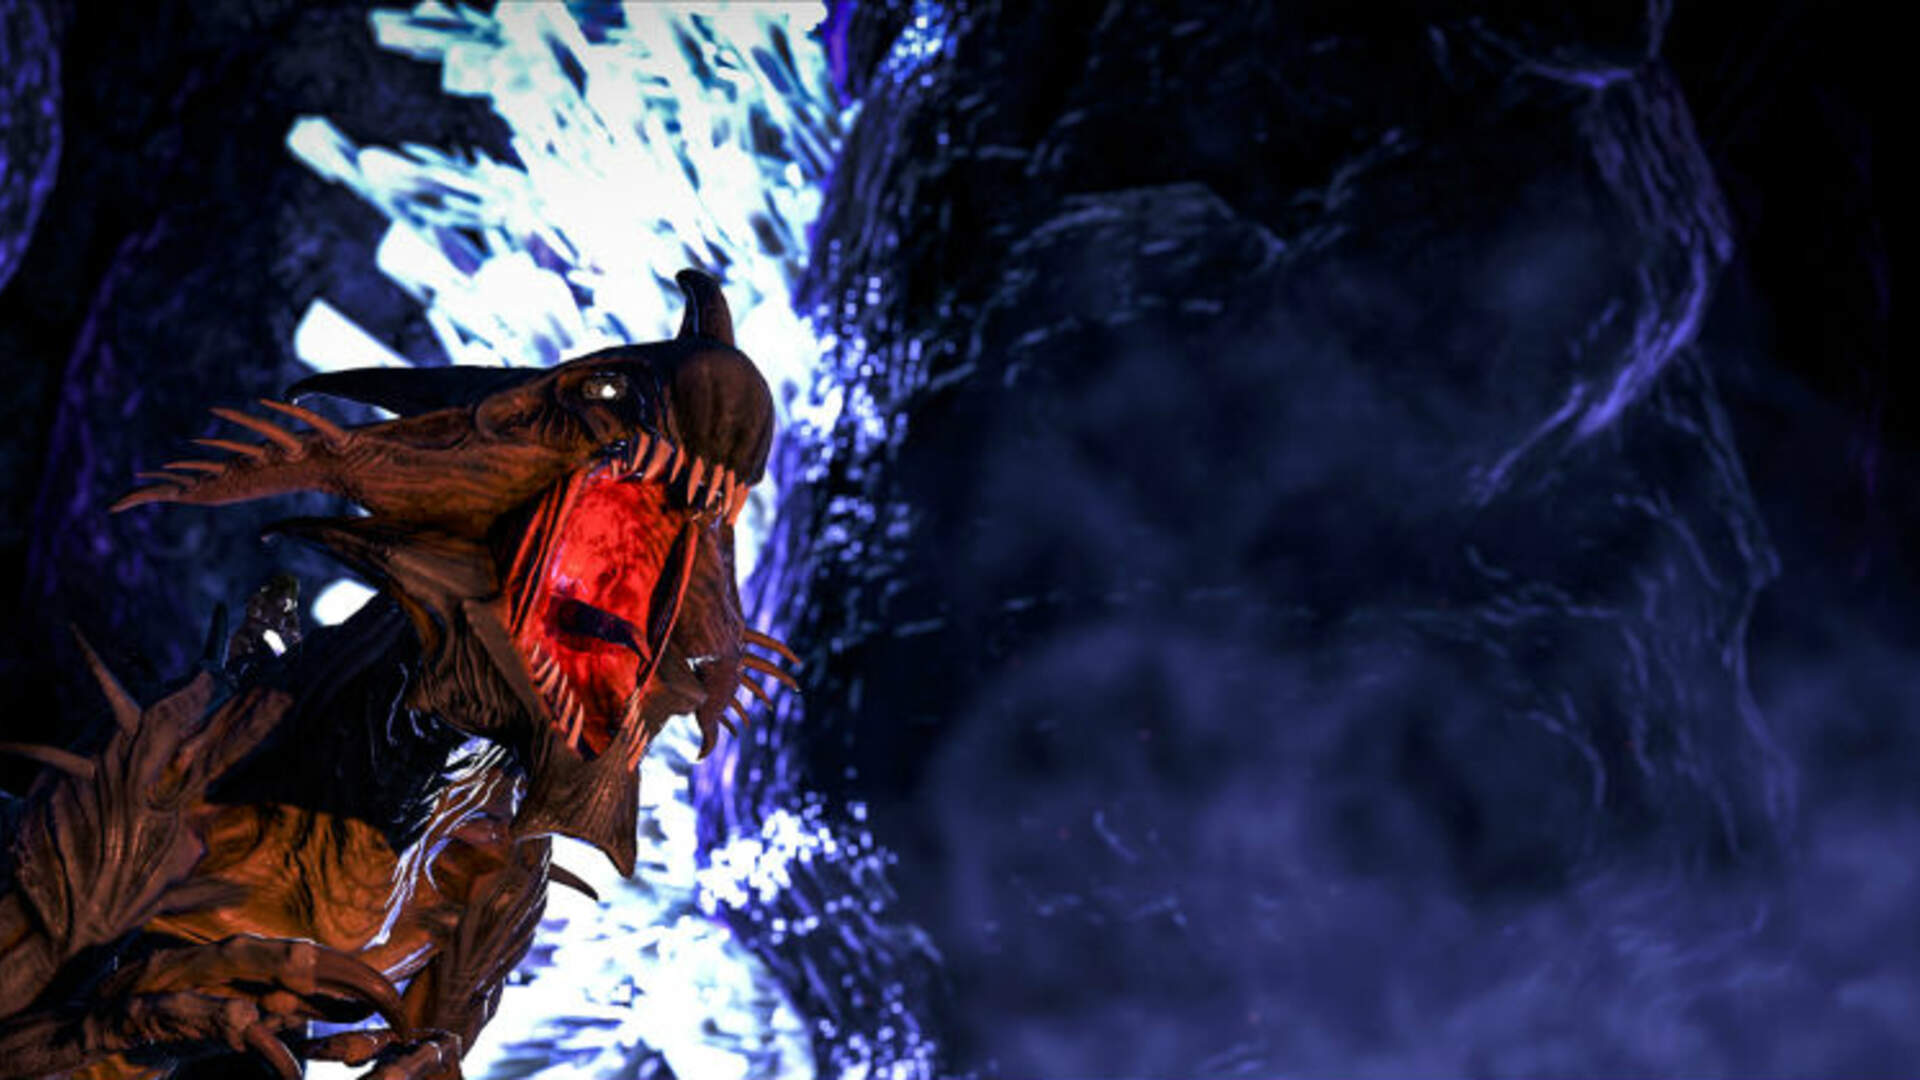 ARK: Survival Evolved's New Aberration Expansion Looks Gross in a Good Way